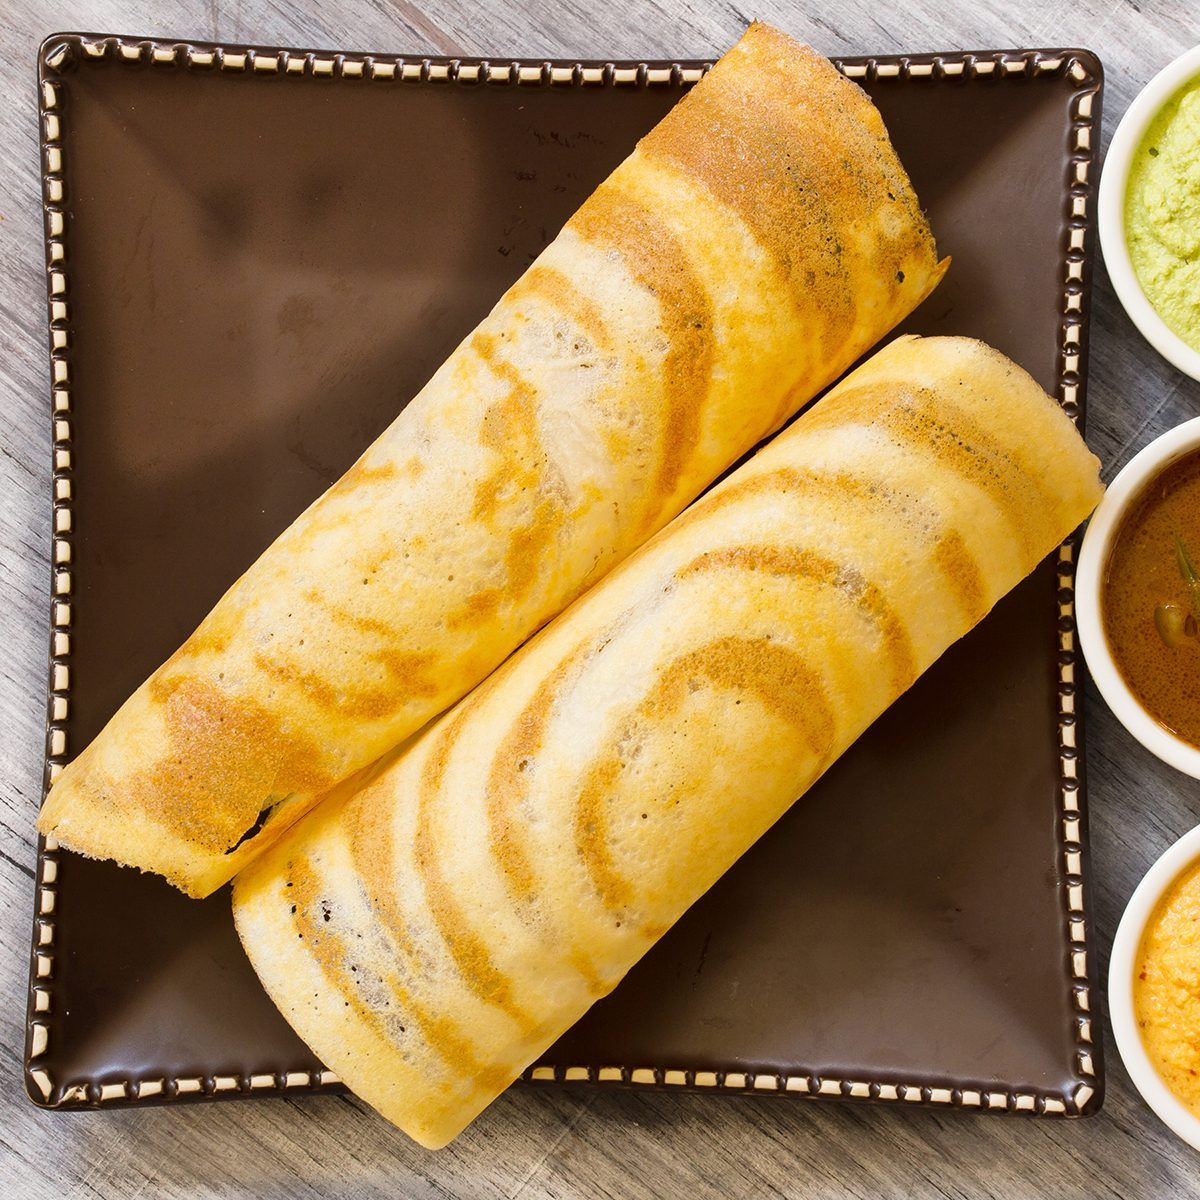 Masala Dosa with Sambar and chutney, south Indian breakfast